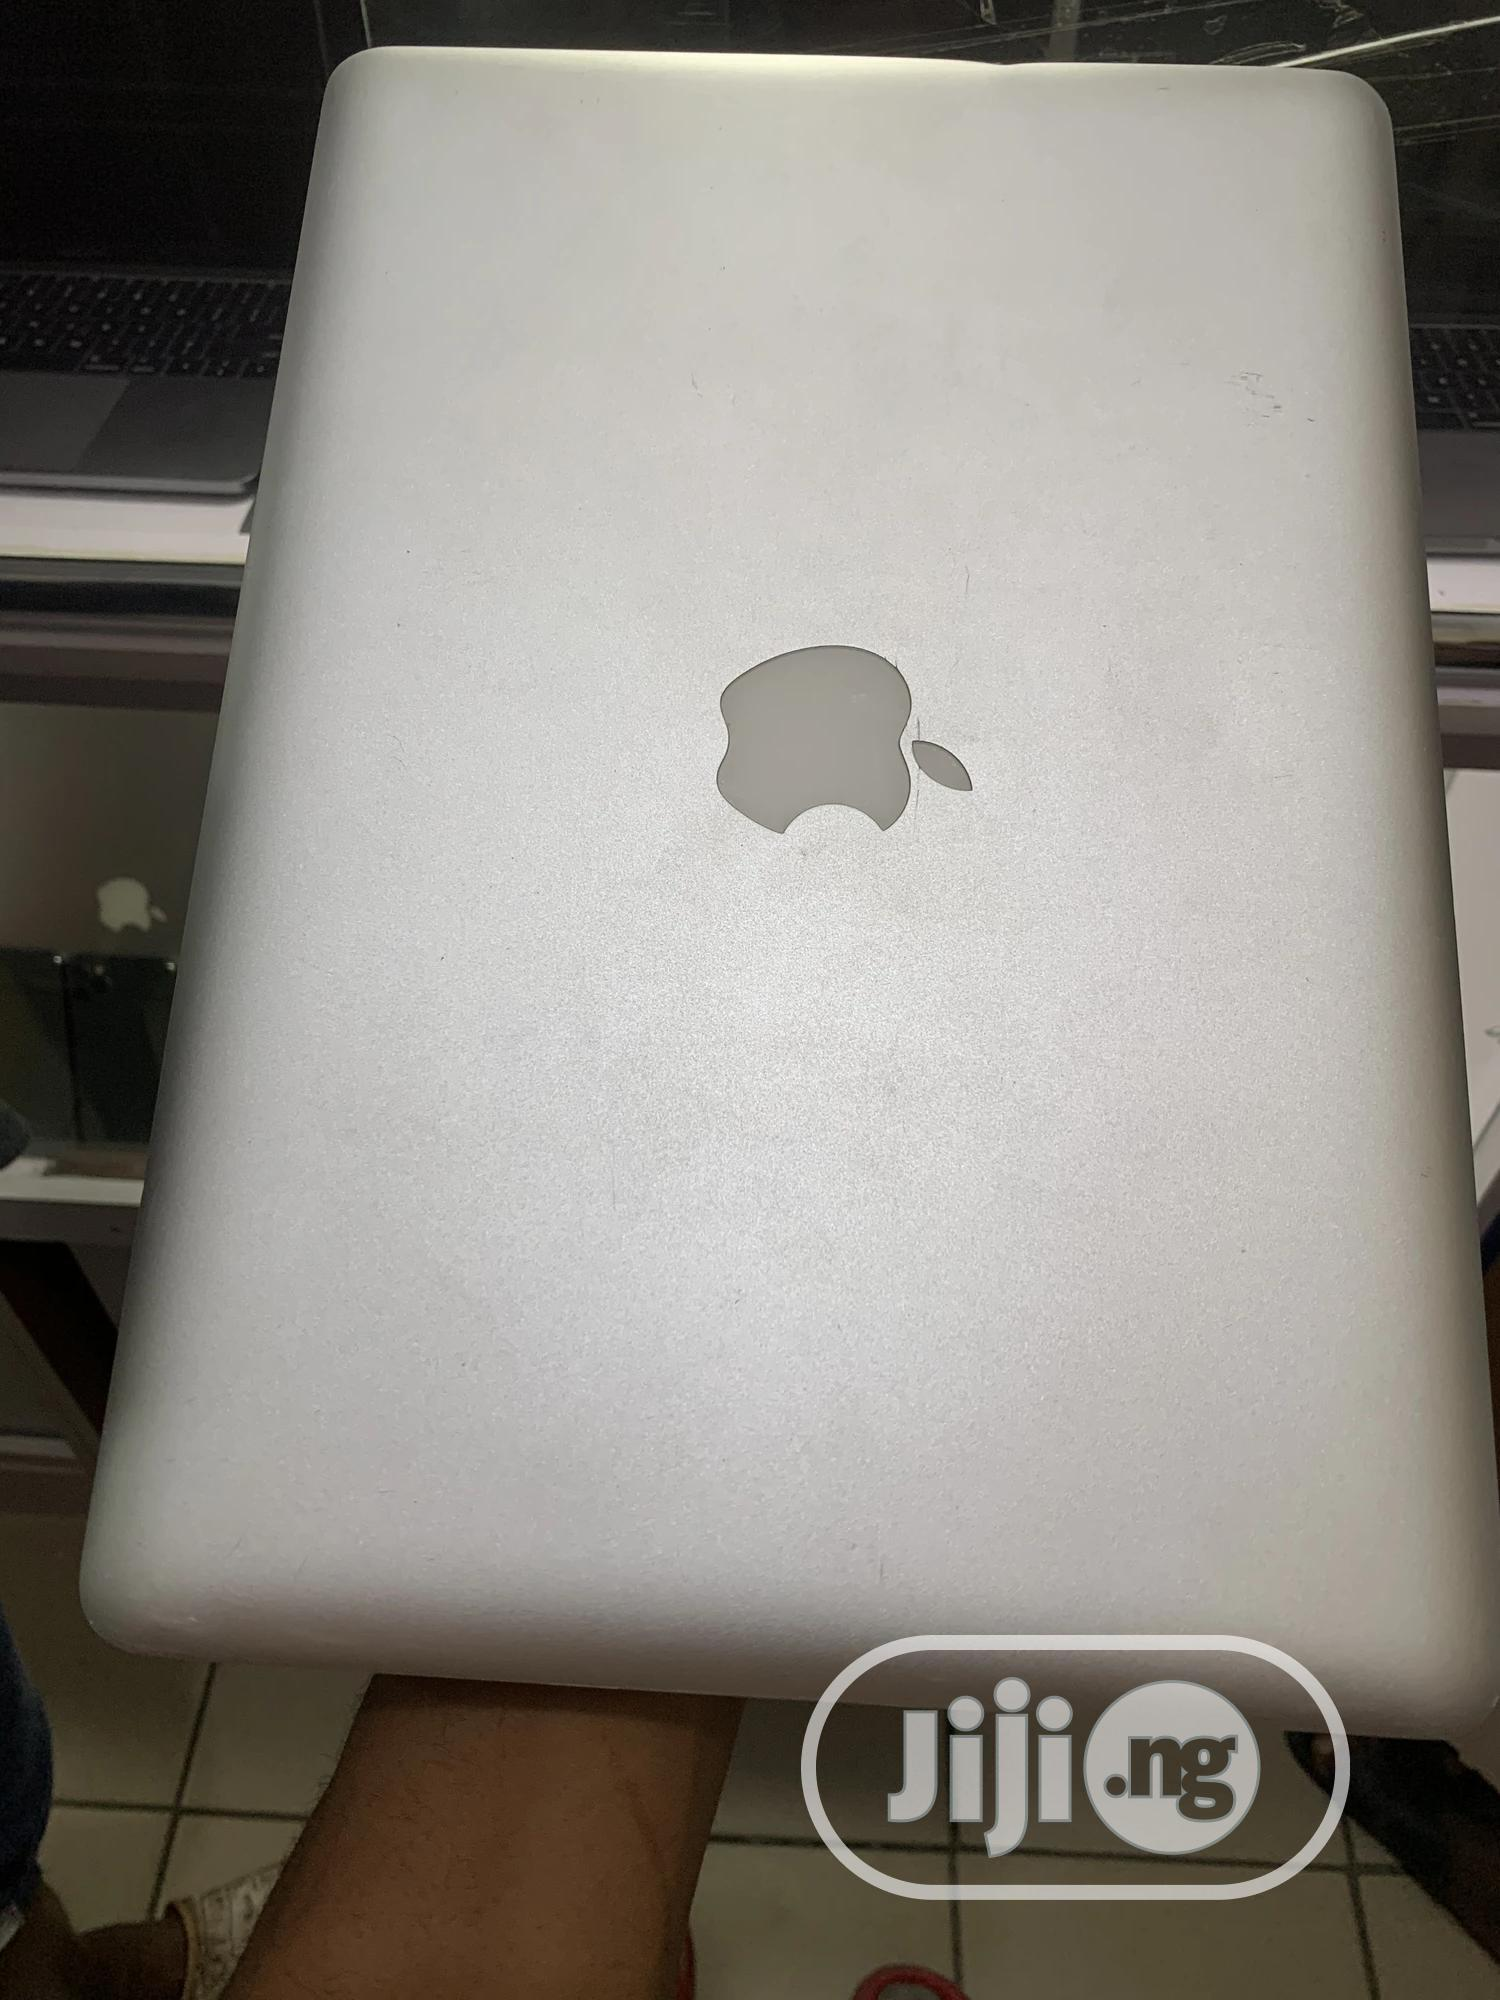 Laptop Apple MacBook 2011 4GB Intel Core I5 HDD 320GB | Laptops & Computers for sale in Wuse 2, Abuja (FCT) State, Nigeria